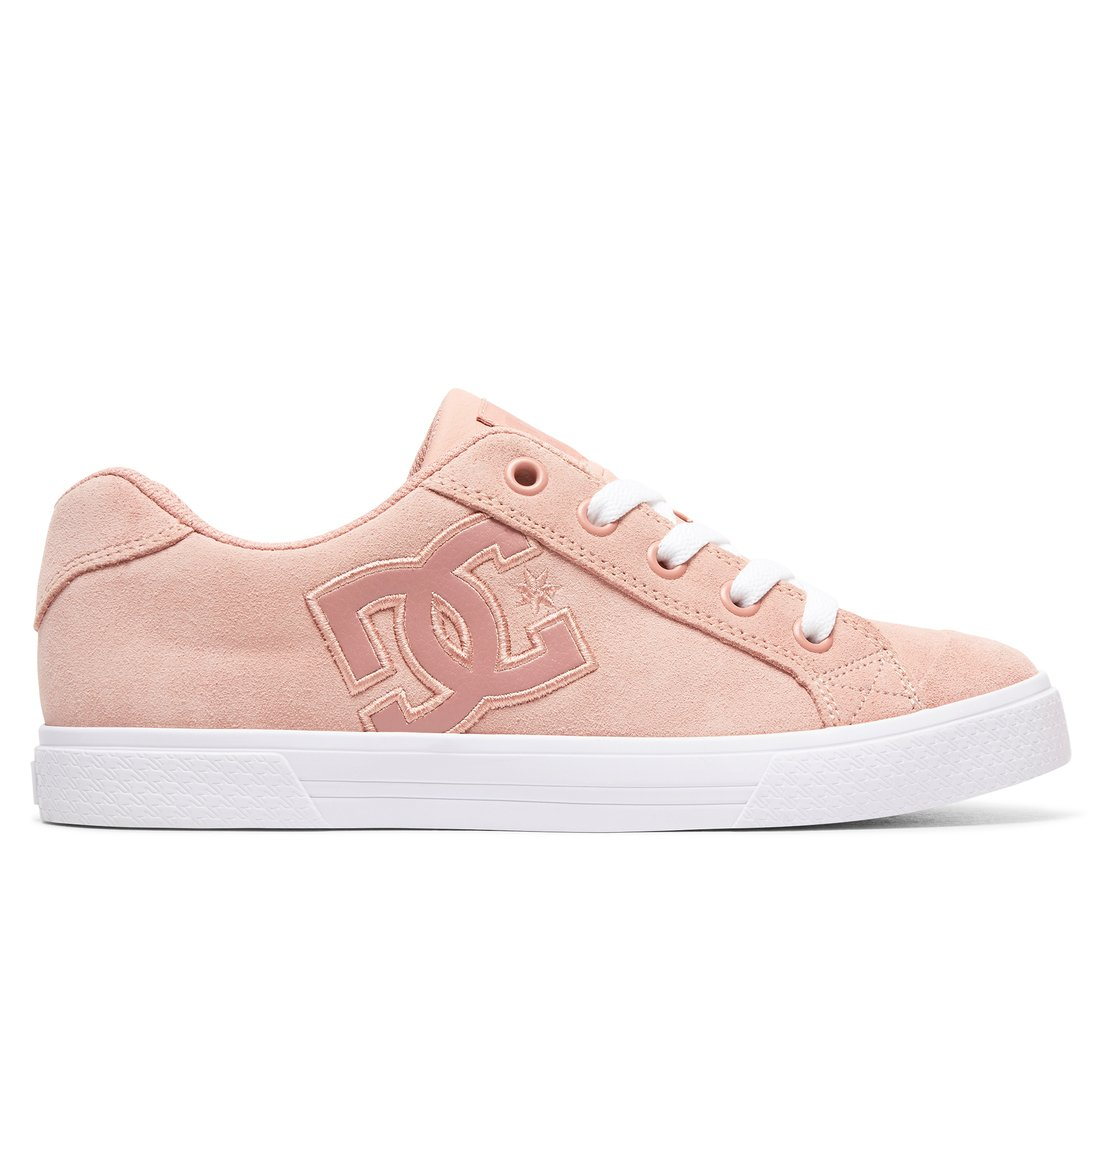 DC Shoes Low Tops »Chelsea SE«, orange, Peach parfait